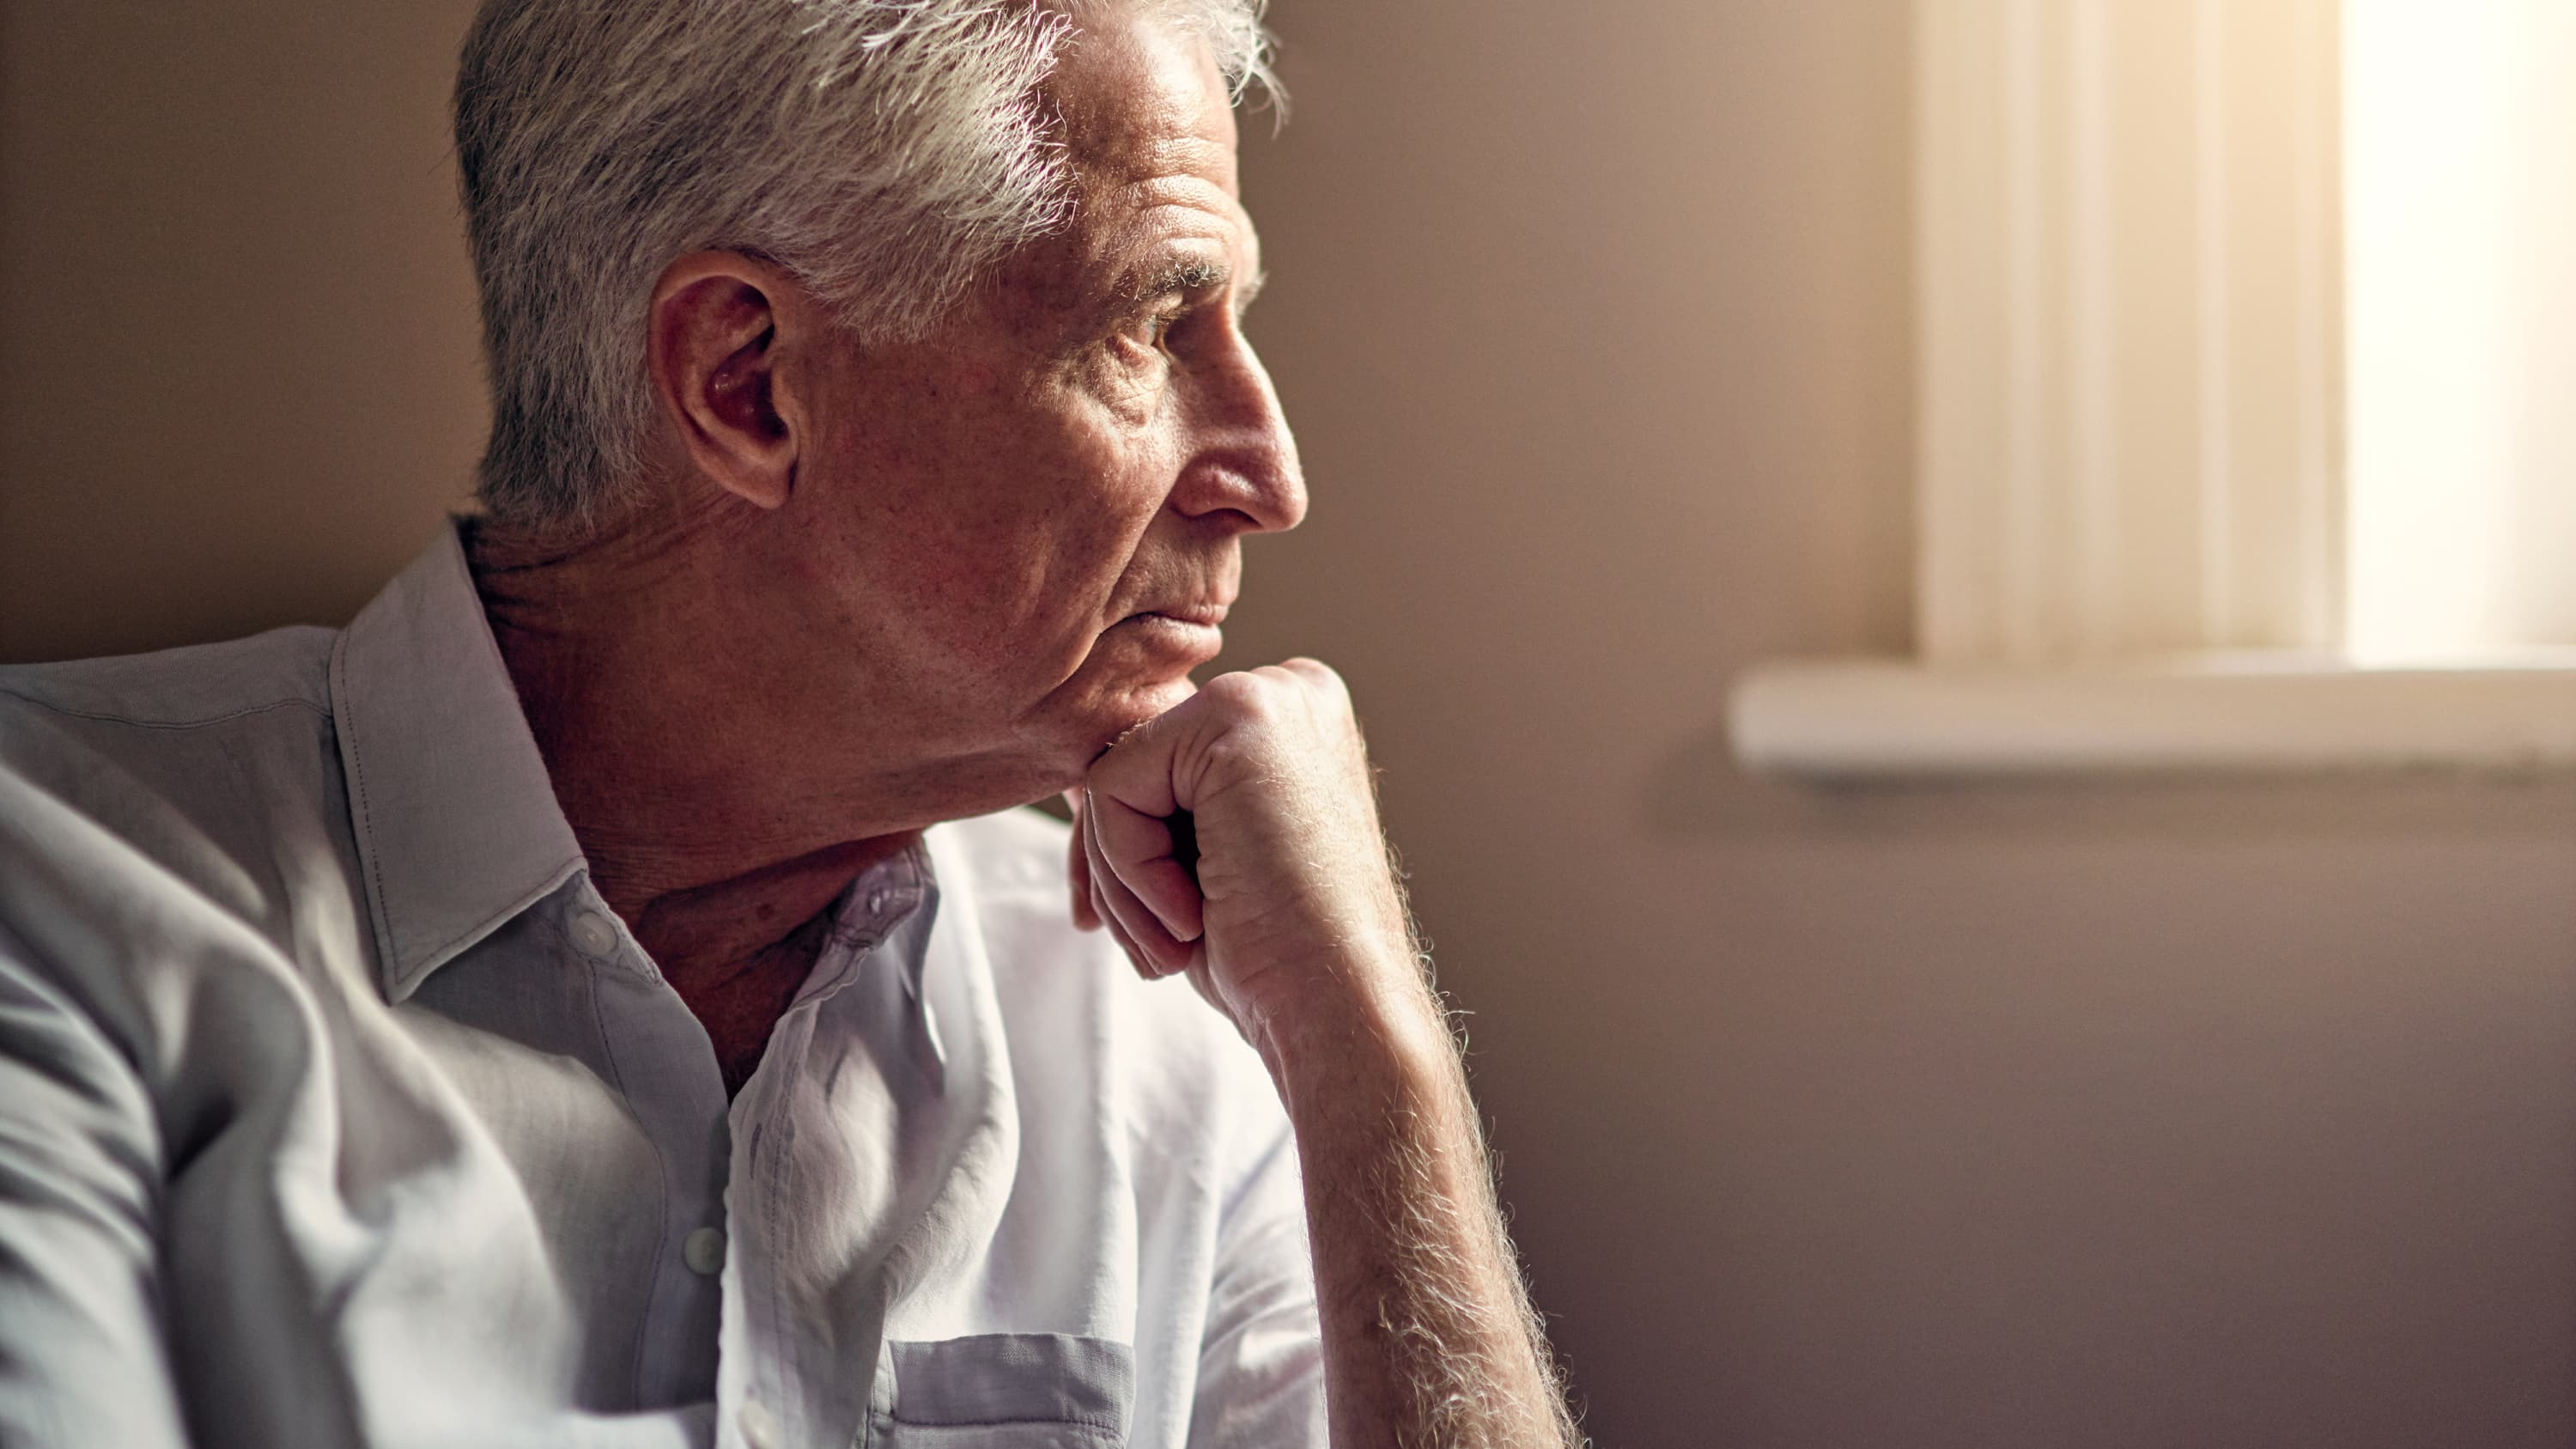 An elderly gentlemen looks out a window, who may be worried about pancreatic cancer.